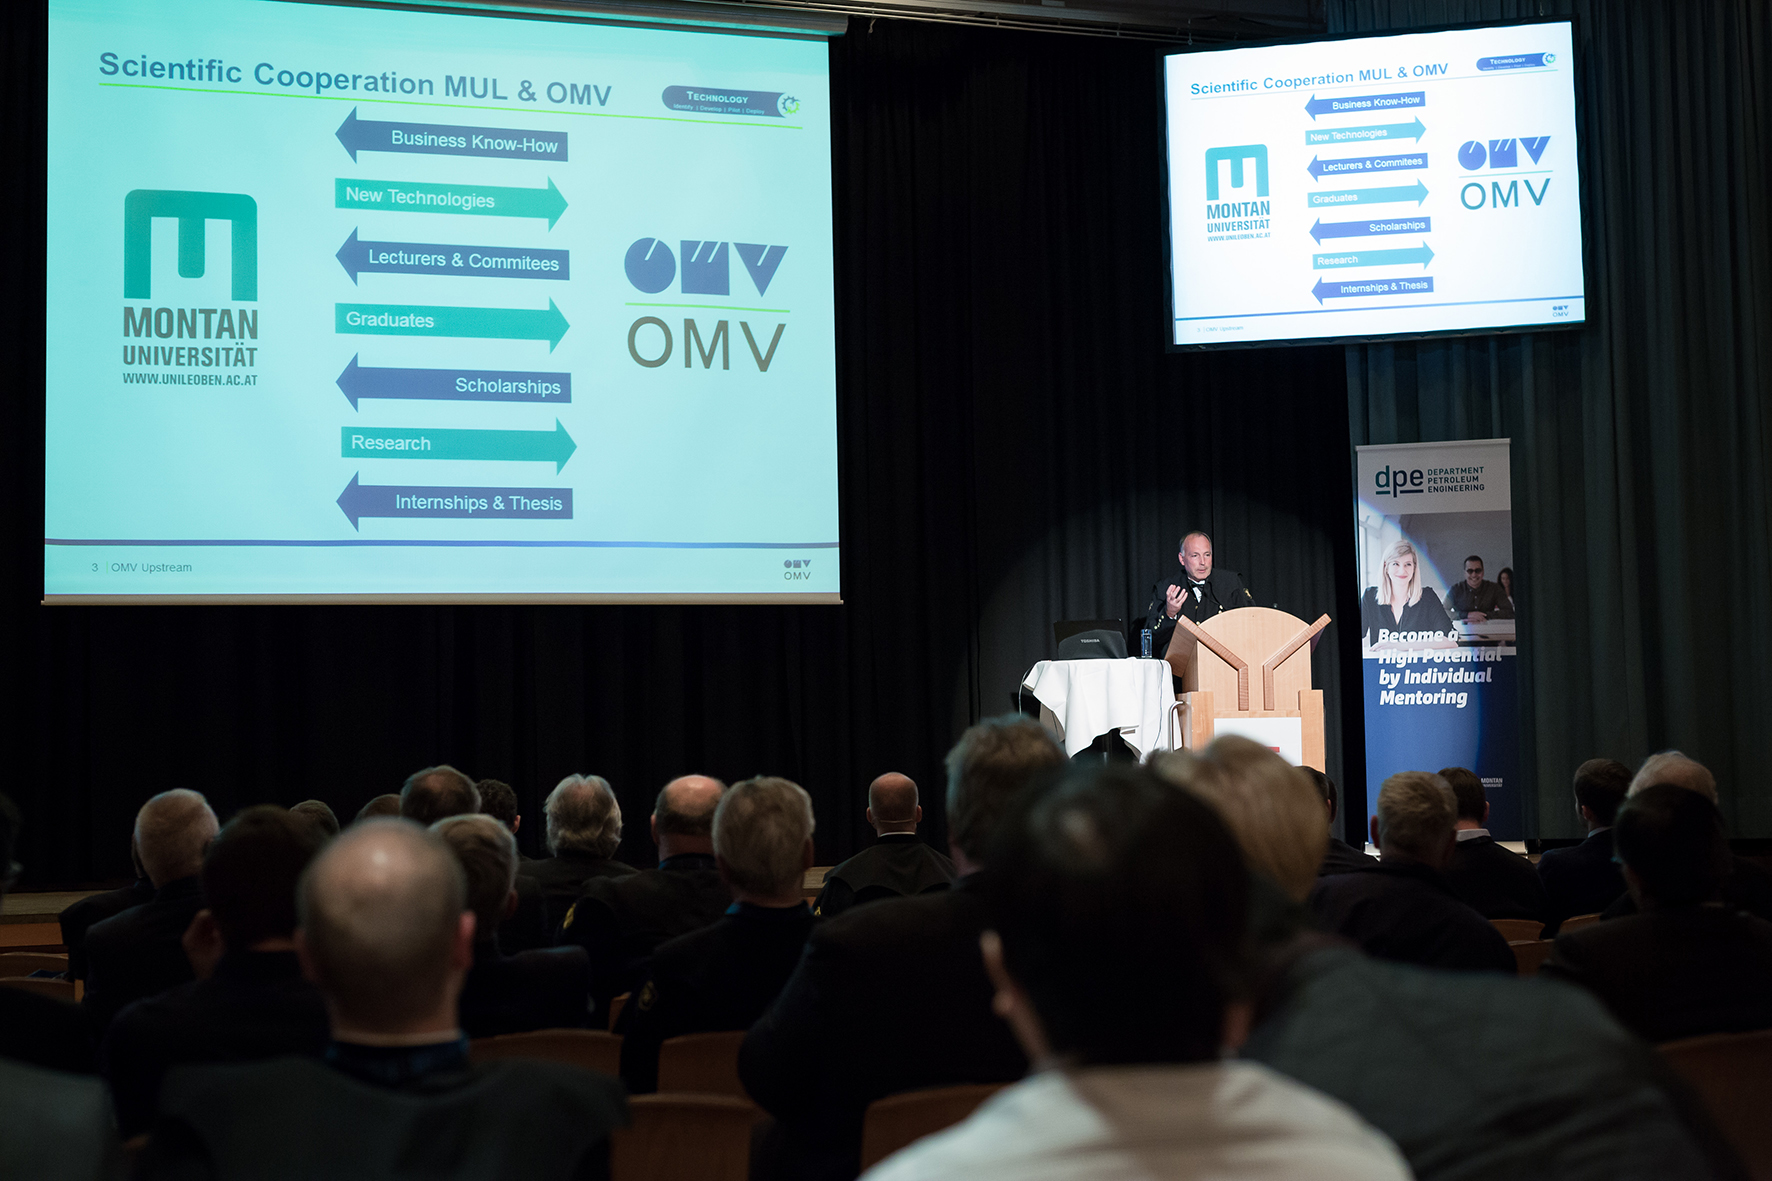 Chris Veit, SVP Exploration, Development and Production at OMV, explains the successful scientific cooperation between MUL and OMV.